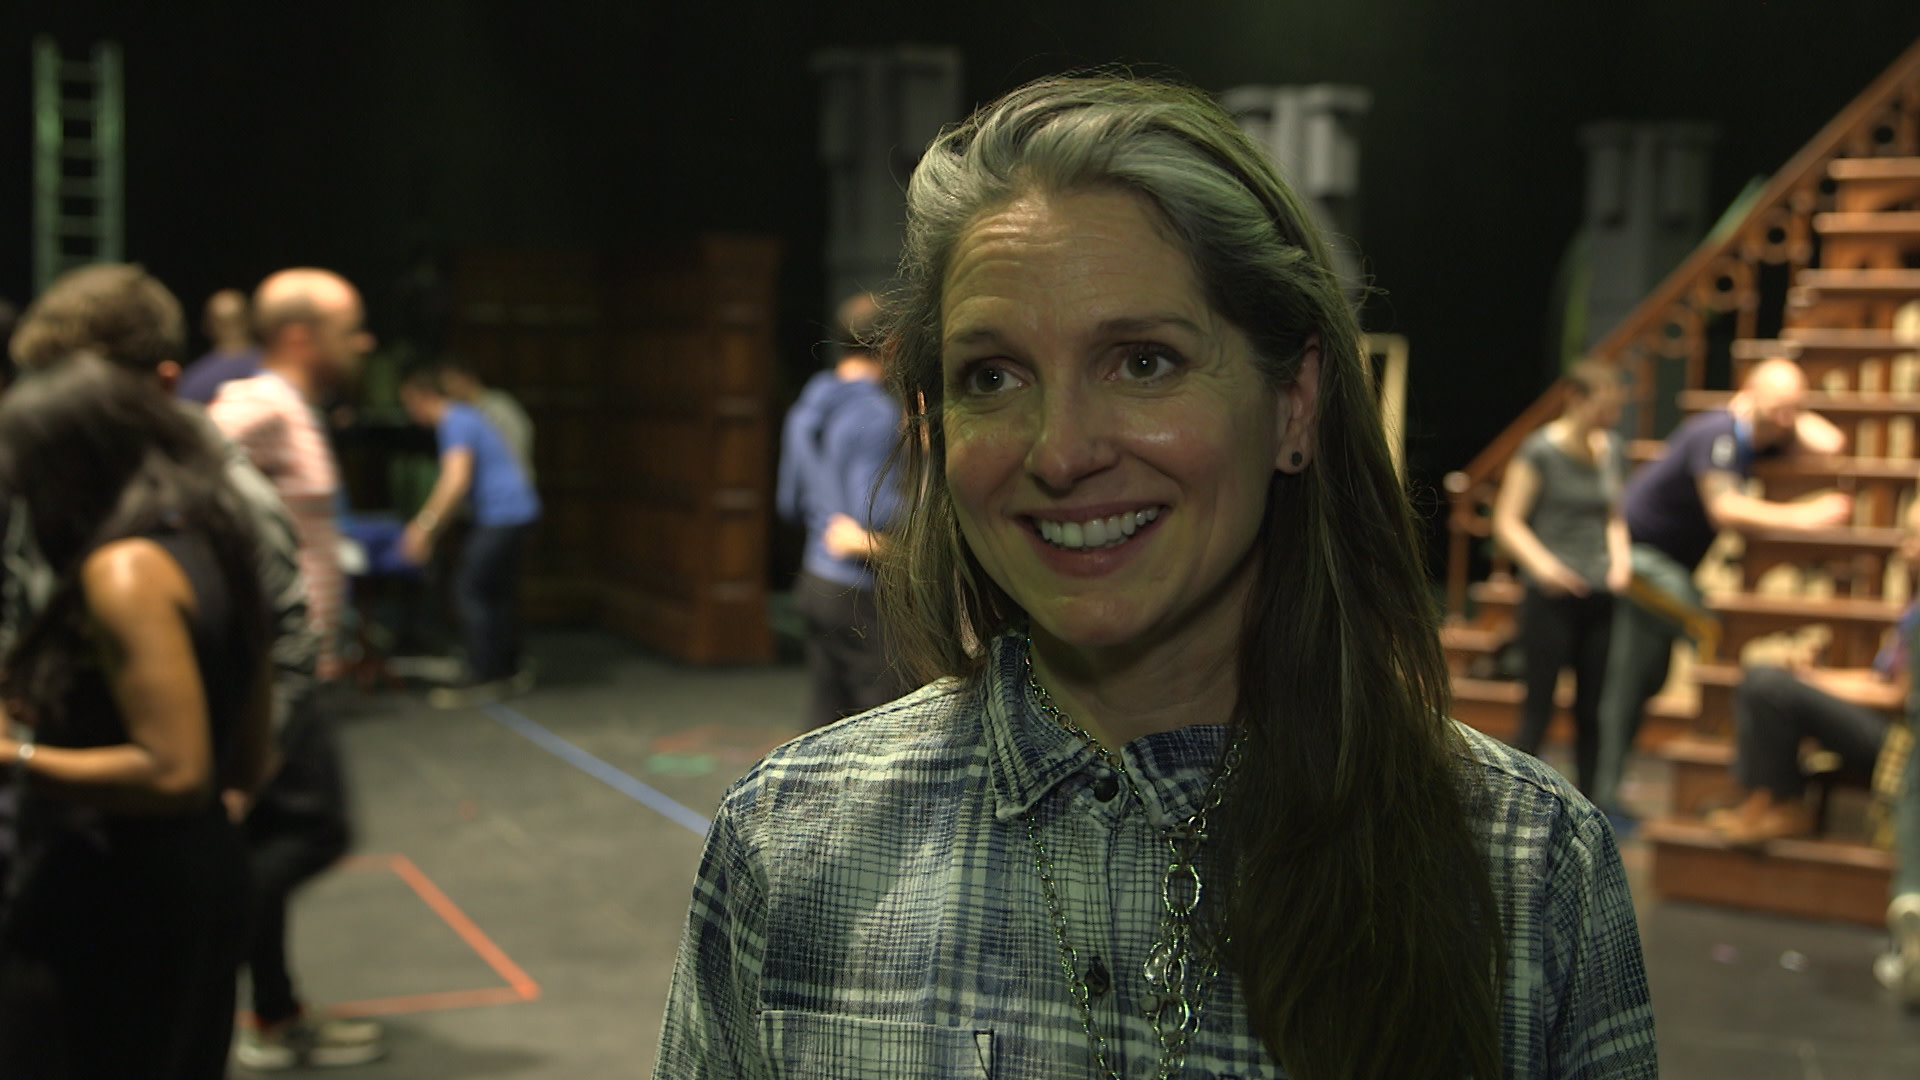 CC Cursed Child set designer Christine Jones